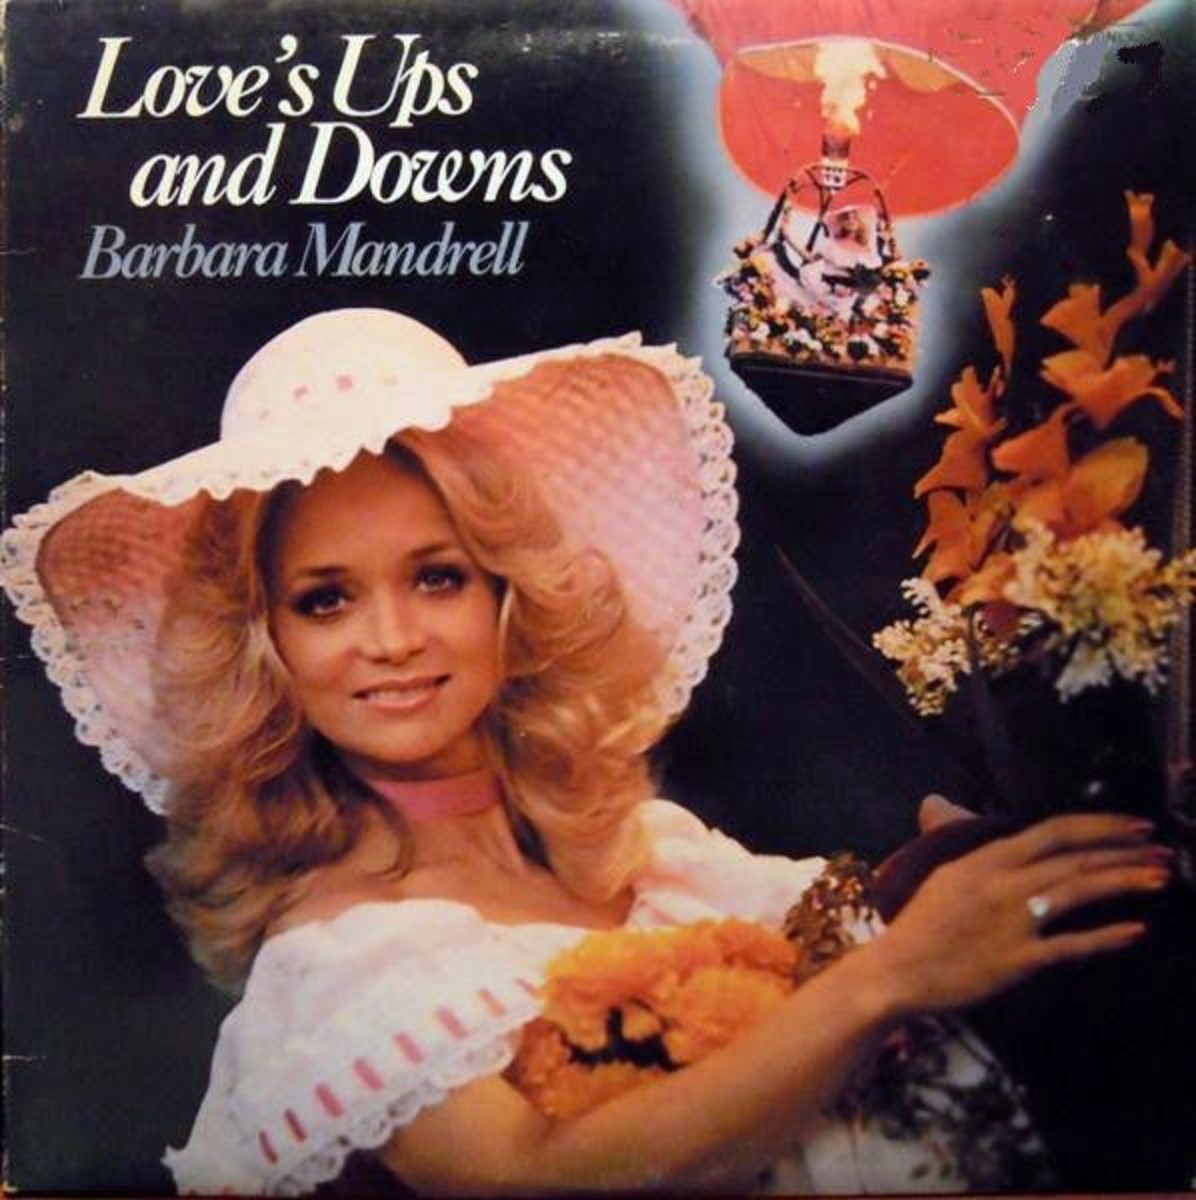 1977 Album cover Love's Ups and Downs